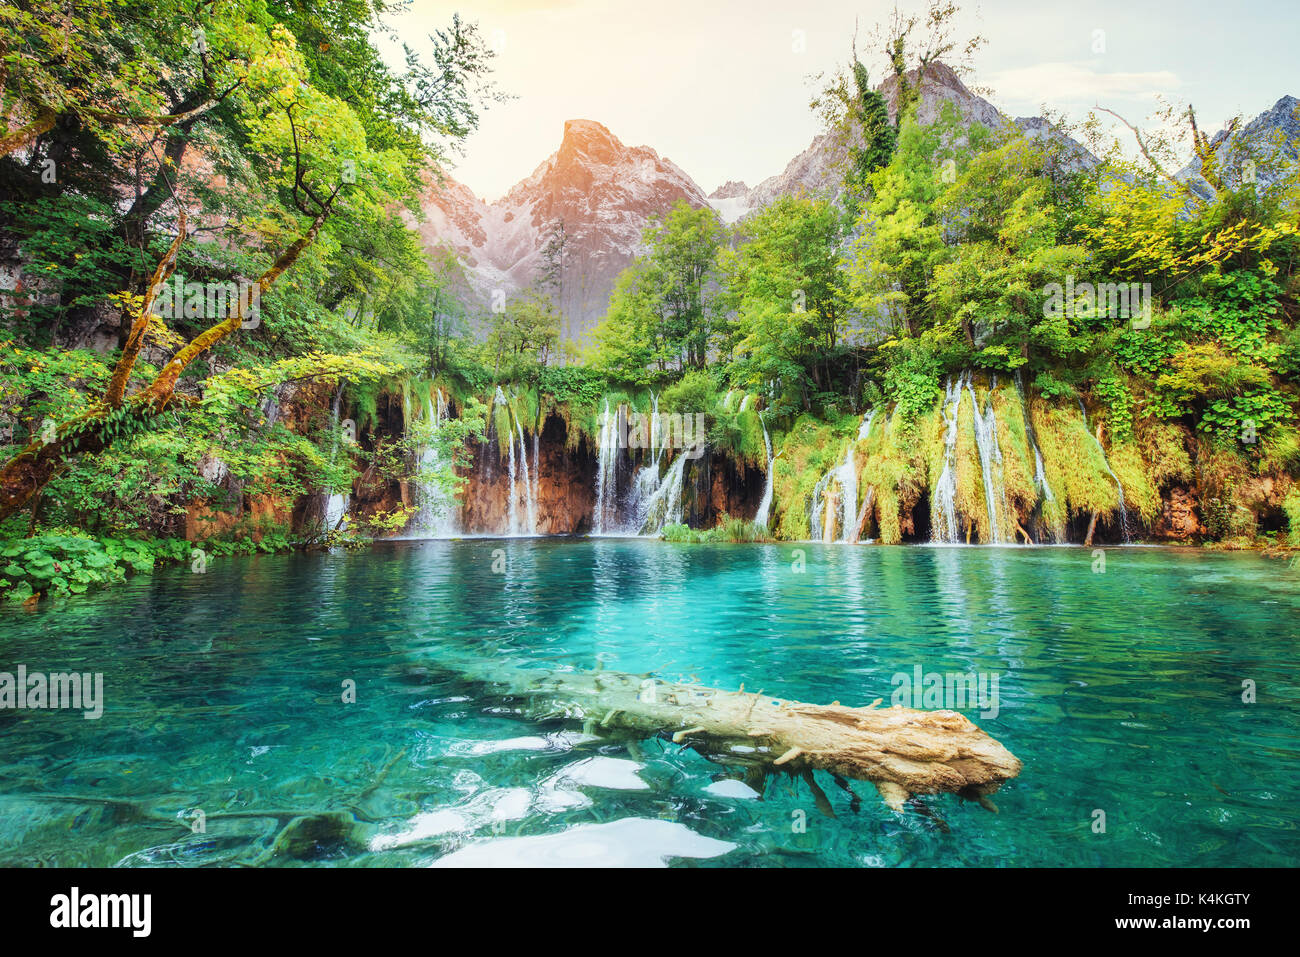 A photo of fishes swimming in a lake, taken in the national park Plitvice Croatia - Stock Image